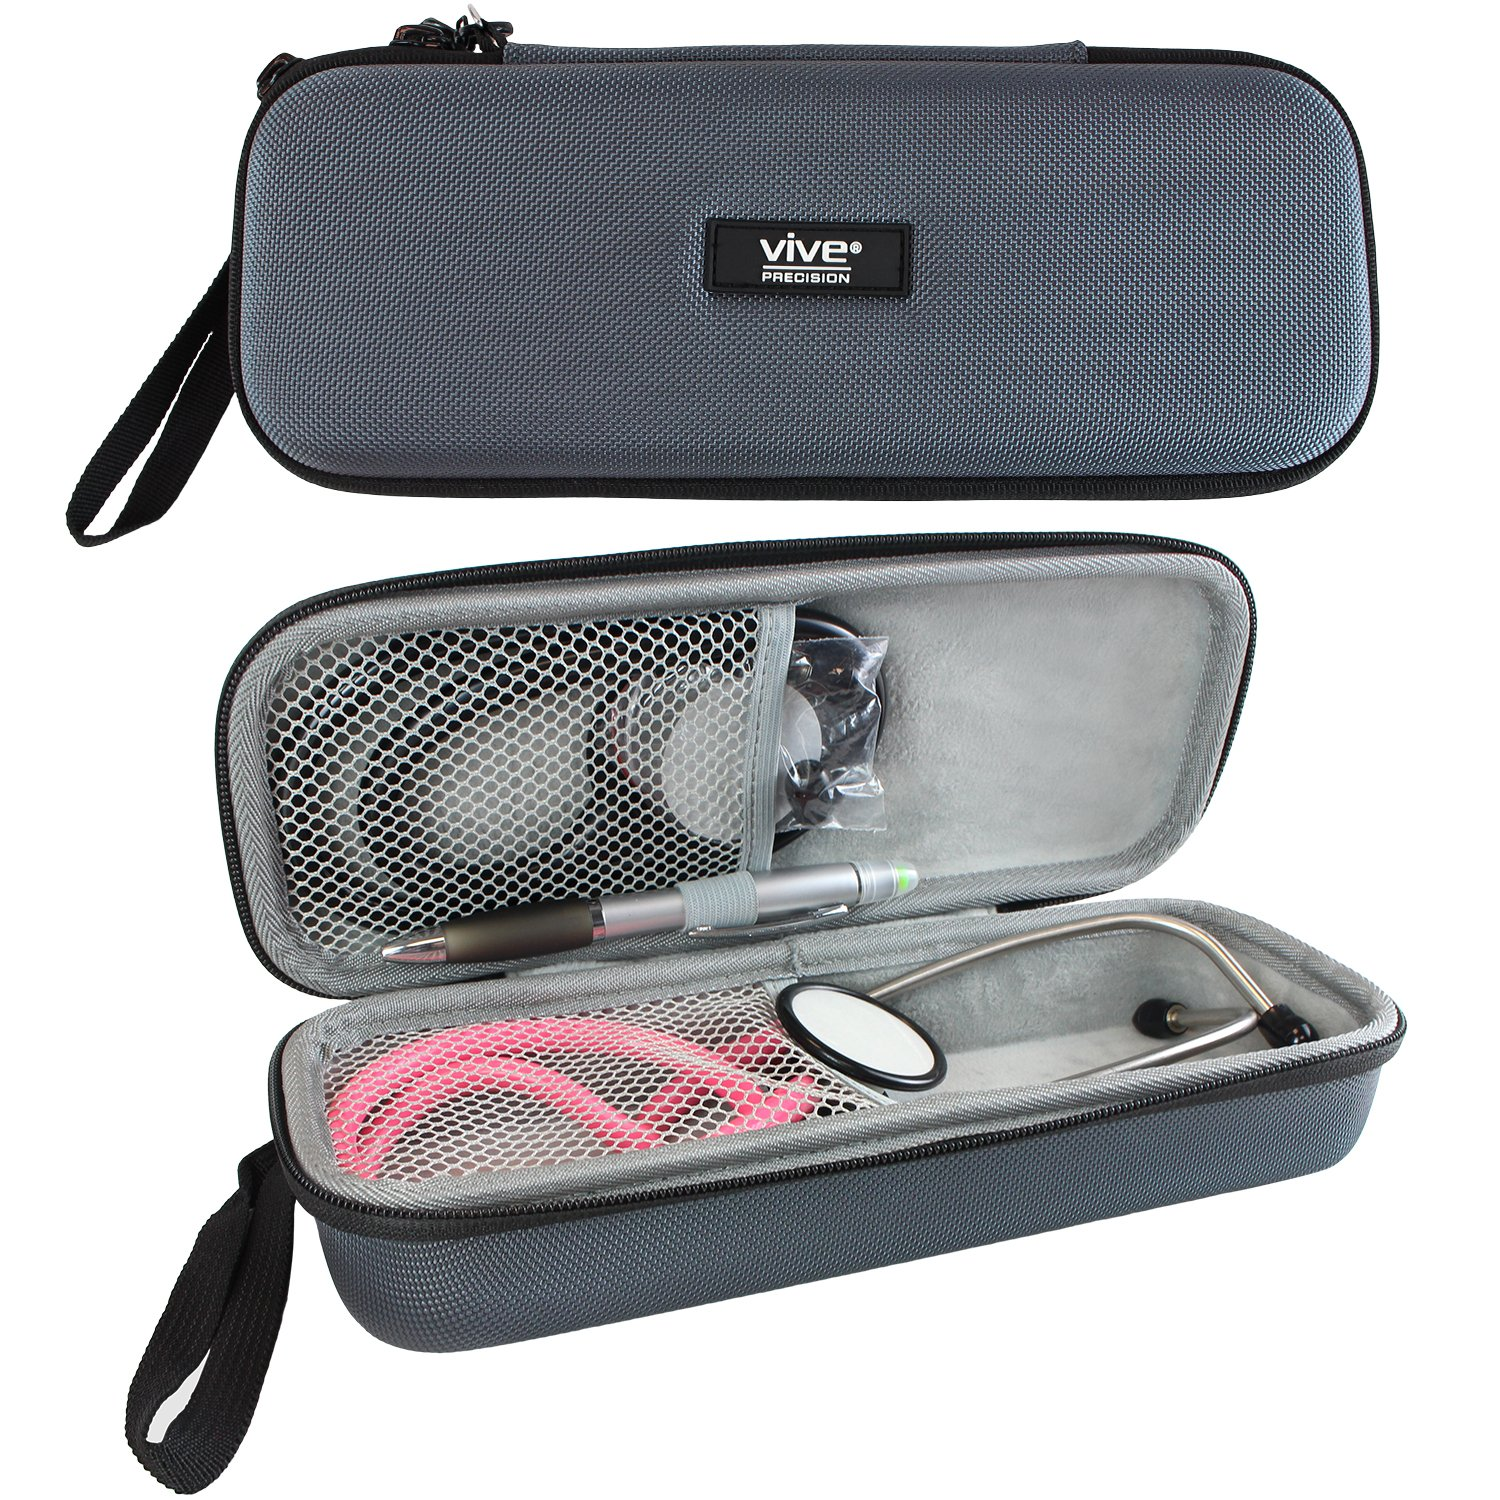 Vive Precision Stethoscope Case - Hard Protective Carry Cover with Handle - Fits Vive Precision and Other Cardiology Brands - Doctor and Nurse Accessories (Classic Gray)